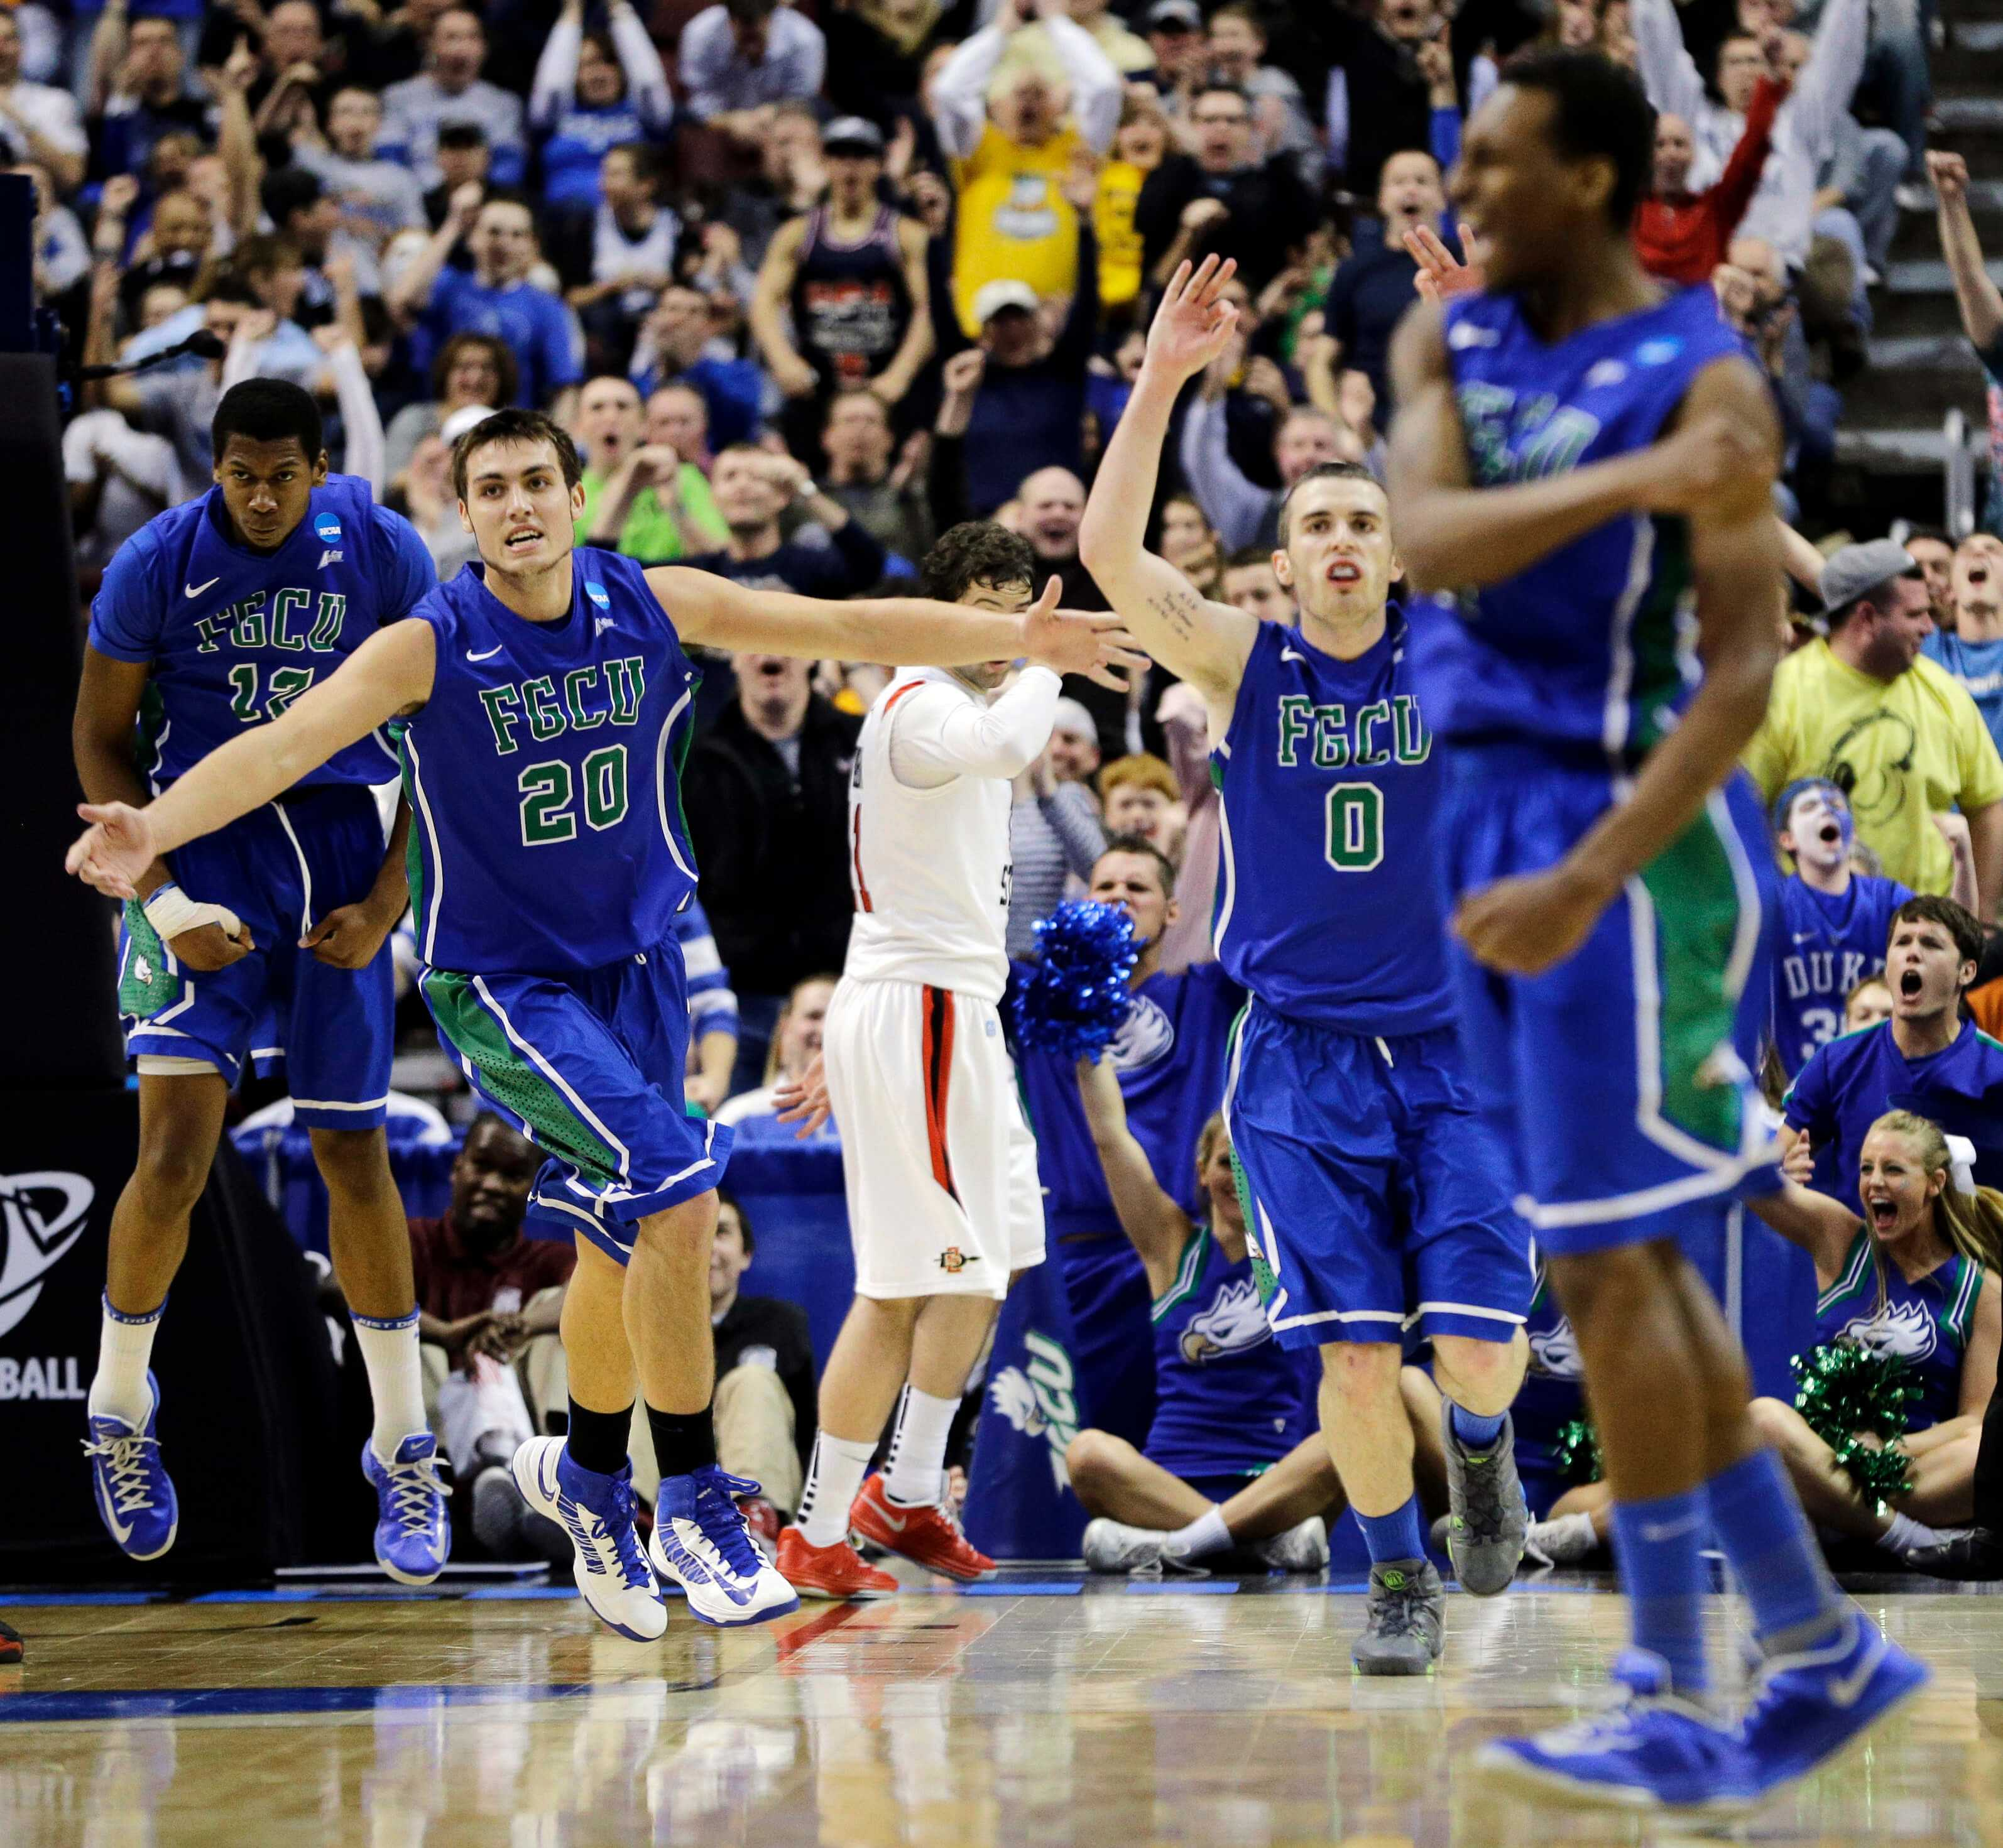 Sweet sensation: FGCU men first No. 15 seed to win two straight